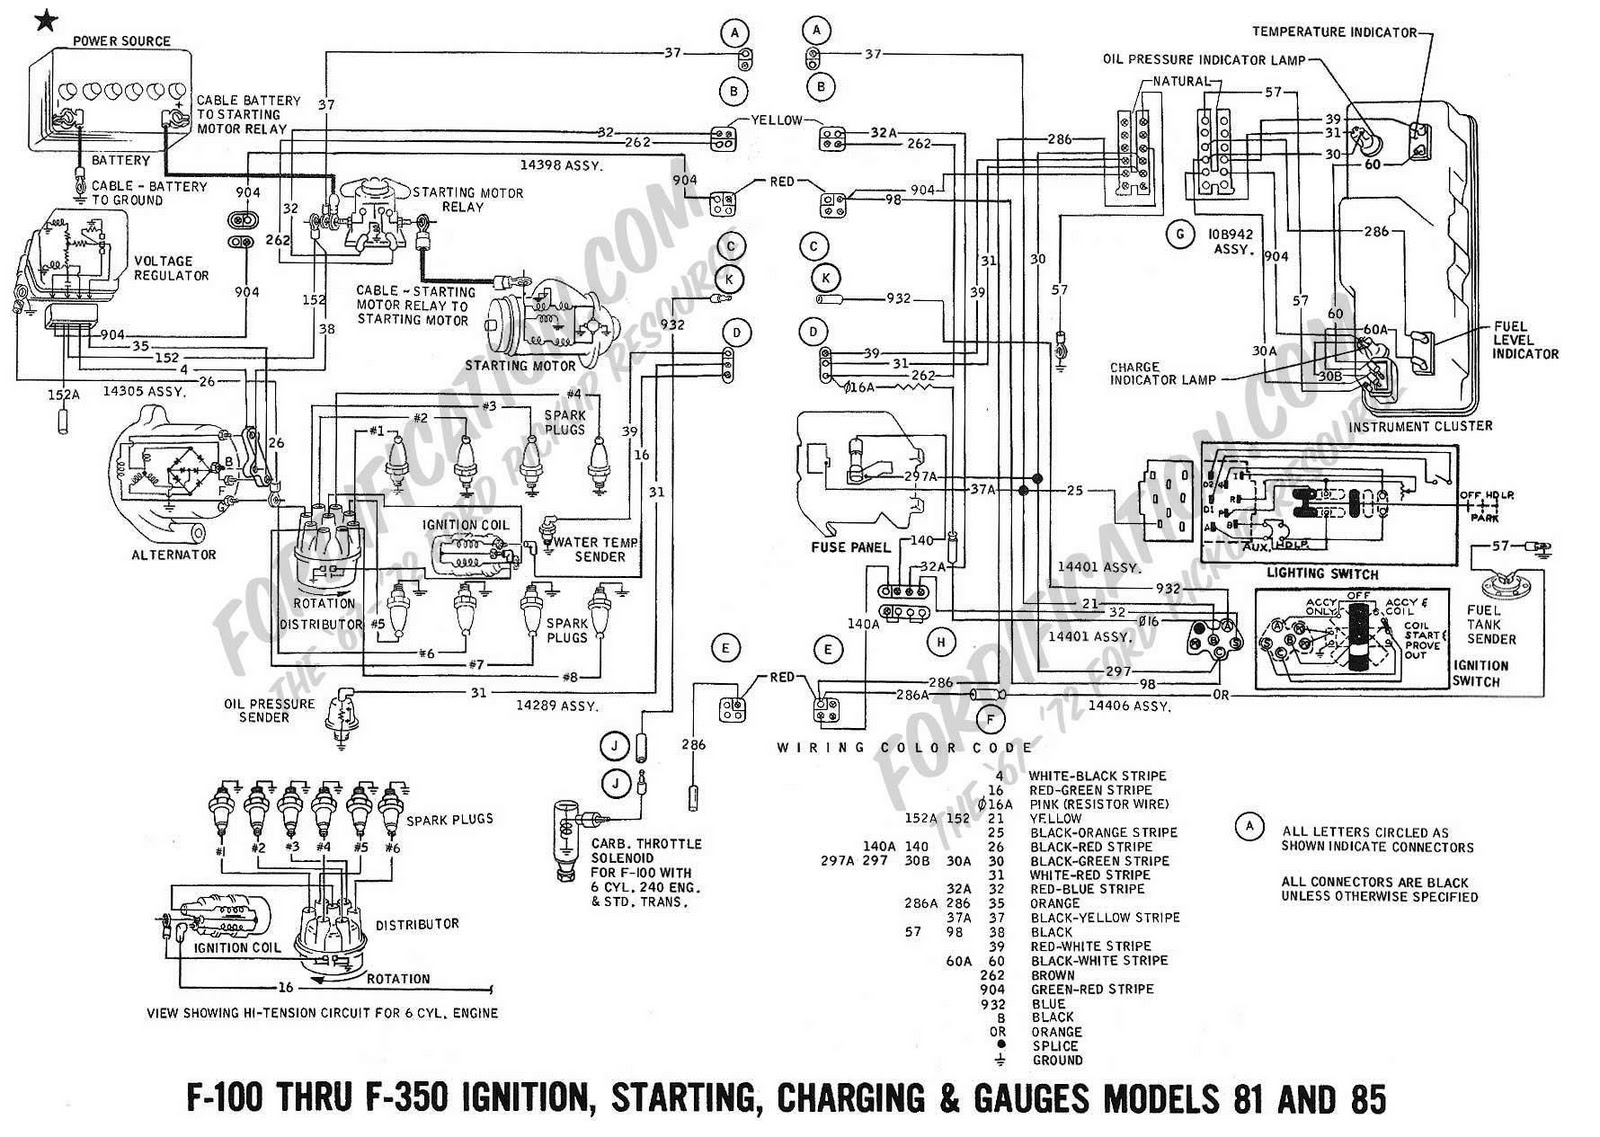 medium resolution of 1968 ford f100 wiring diagram color wiring diagrams box 65 ford wiring diagram 1966 f100 wiring